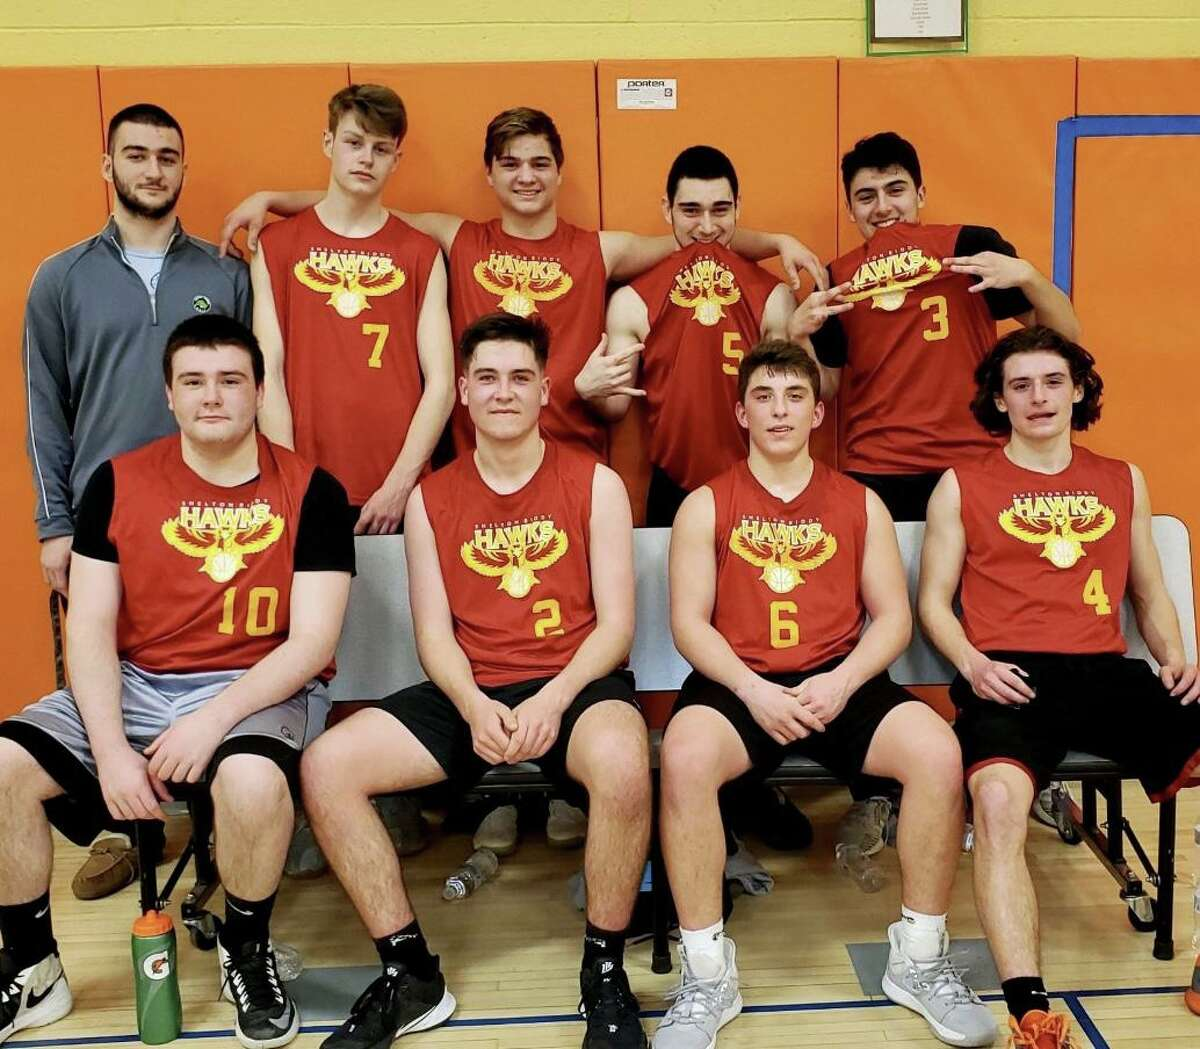 The Hawks won The Senior Cousy basketball championship. Coached by Luke Riccio, who also won a championship in his years playing, the Hawks were led by Michael Wilson, Kyle St. Pierre, Jared Sedlock, and Billy Zaccagnini; (second row) coach Riccio, Conner McGuire, Tim Santos, John Riccio and Chris Zarro.